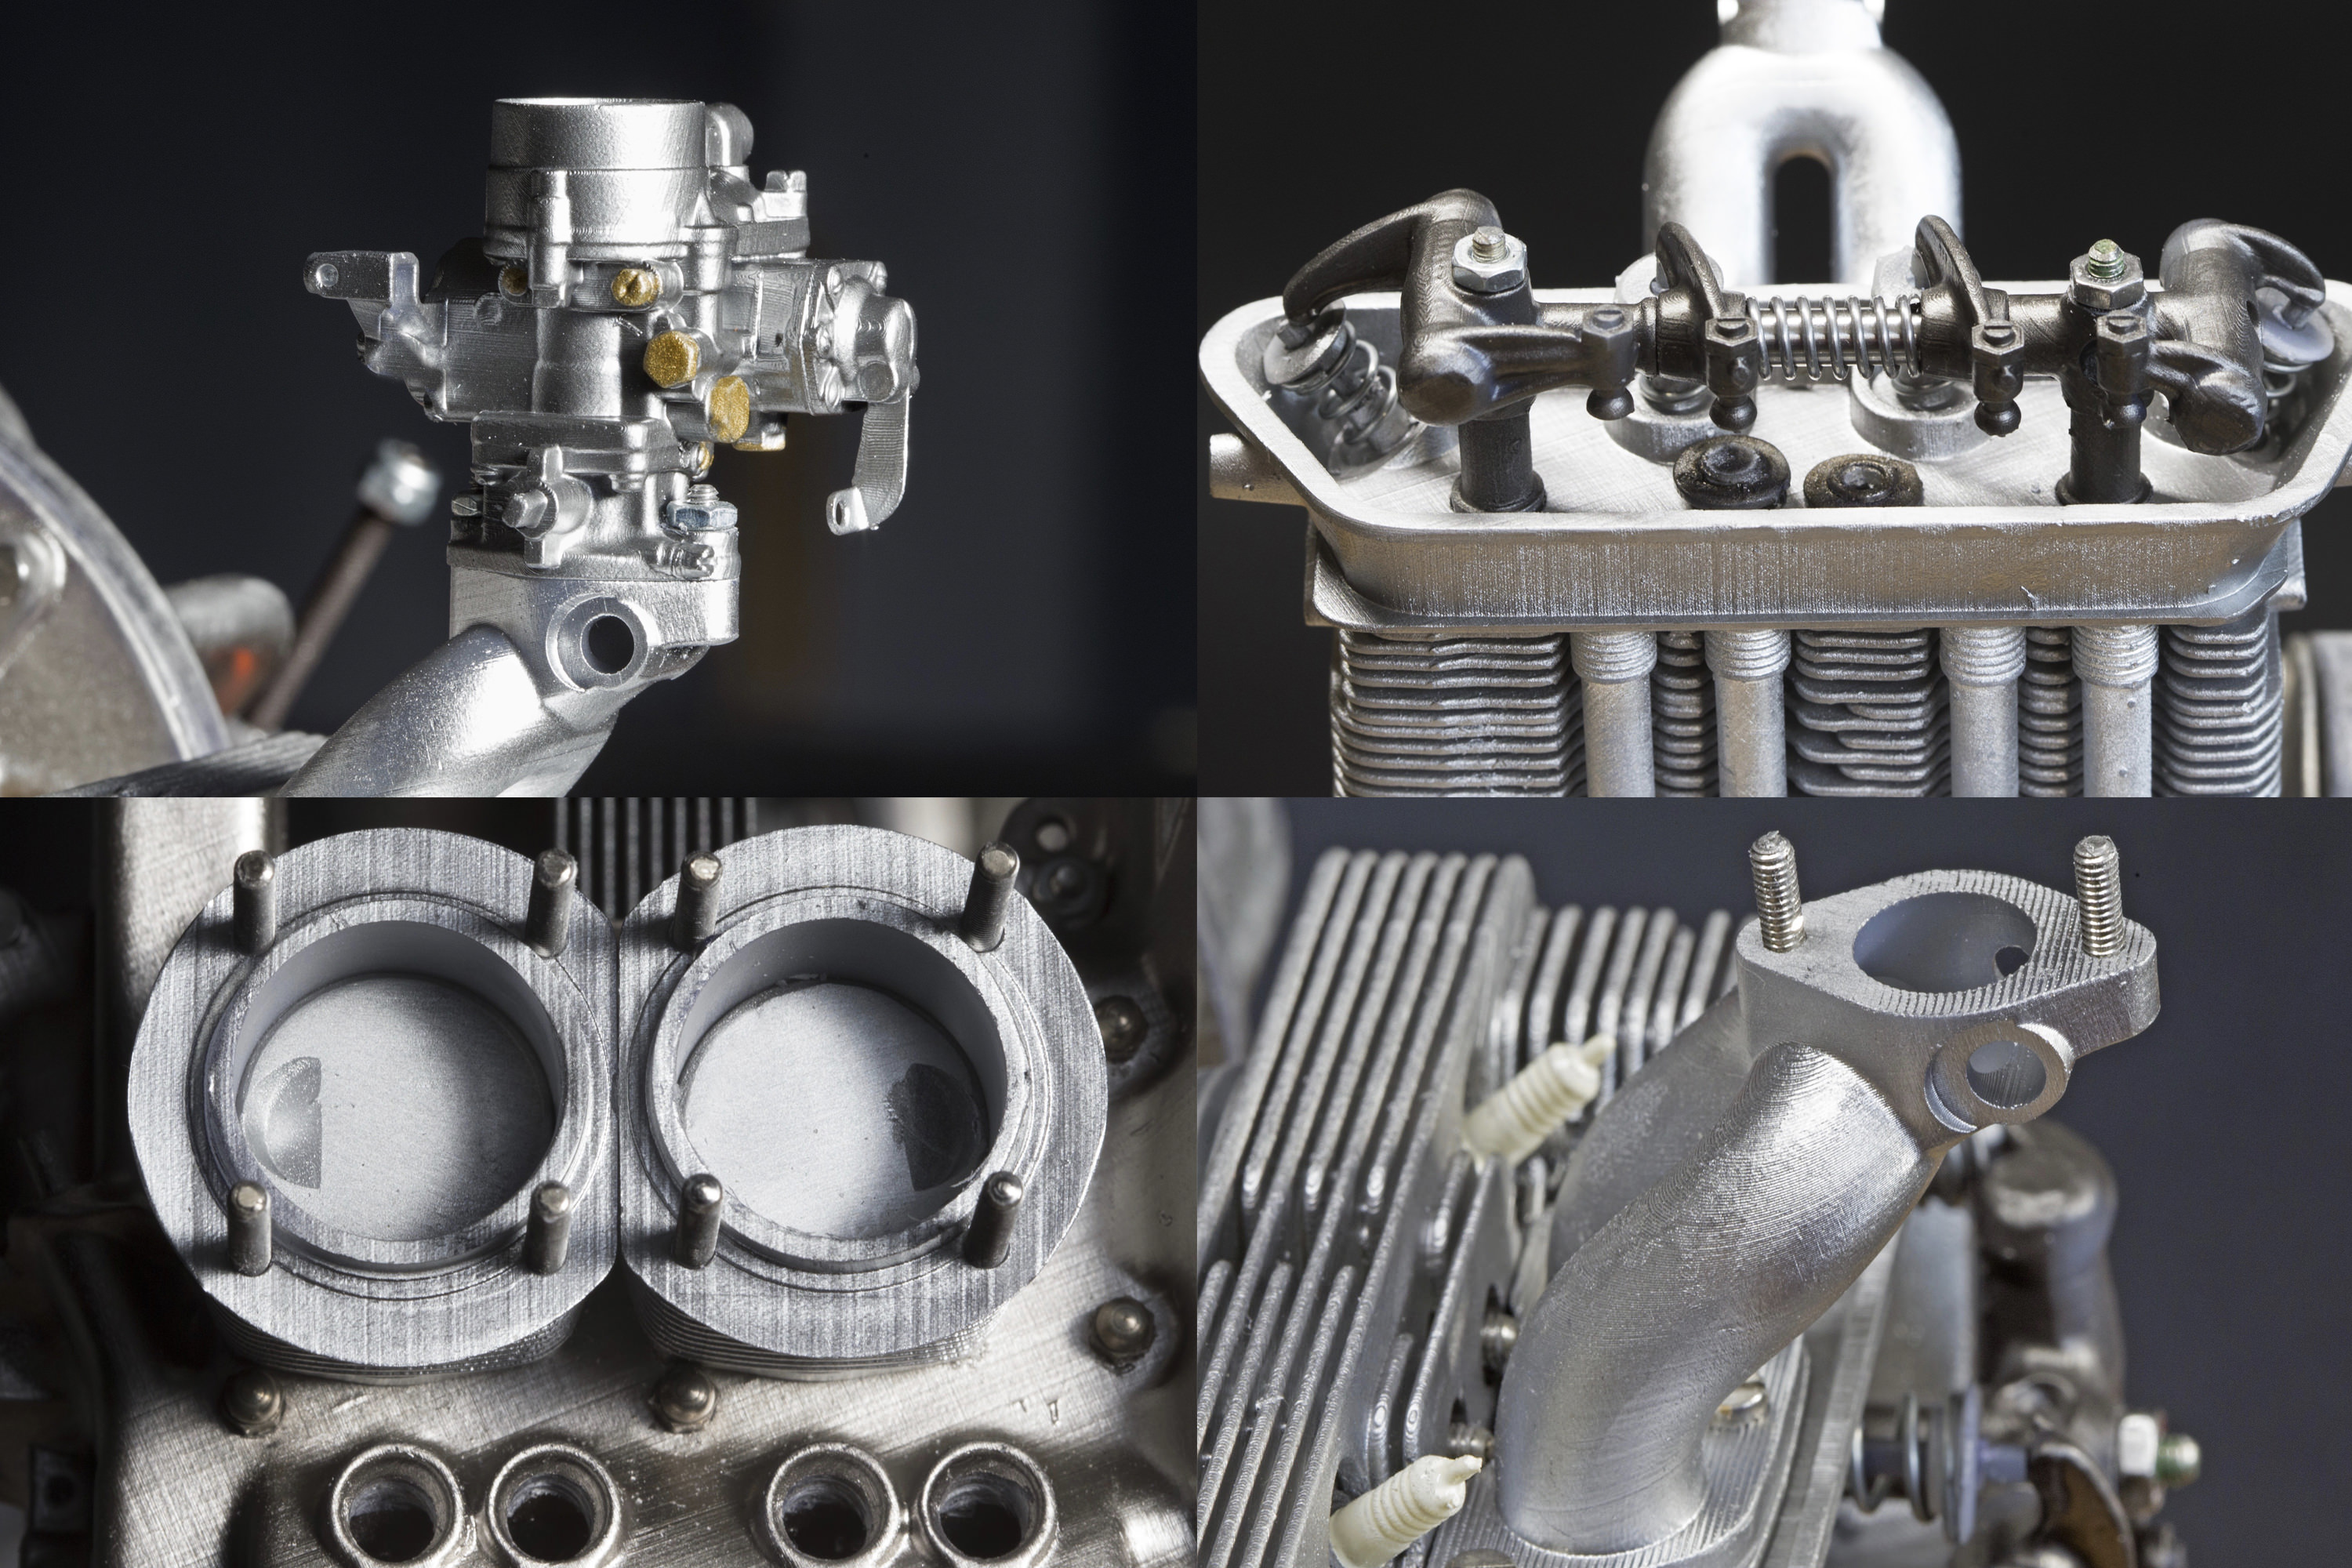 Details of the the Porsche 356 engine